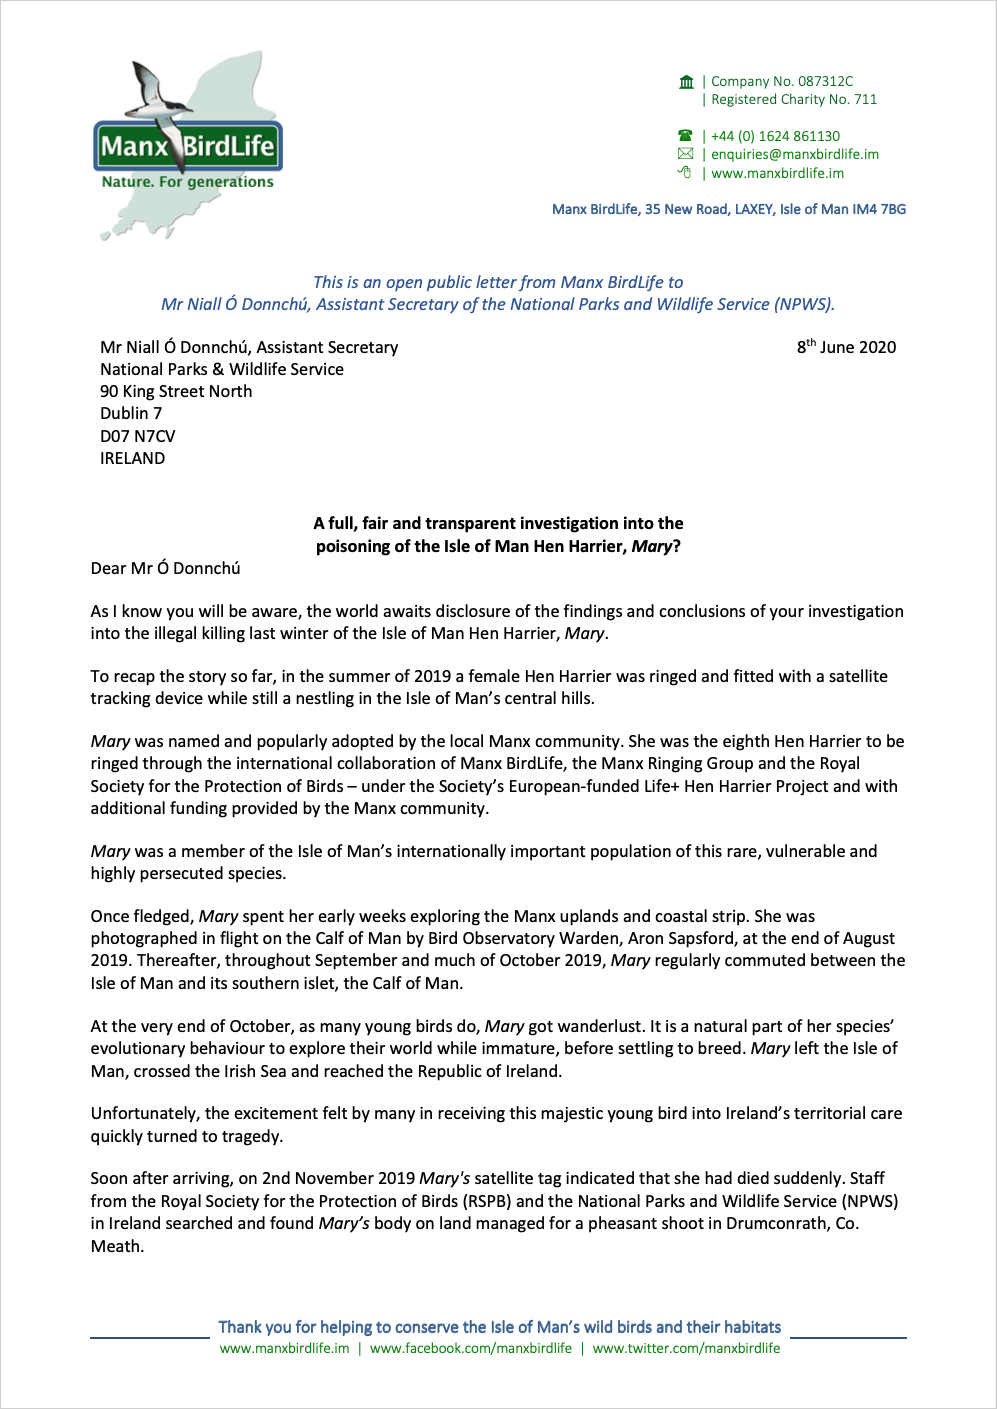 Open public letter to Mr Niall Ó Donnchú NWPS re the illegal poisoning of Mary page 1